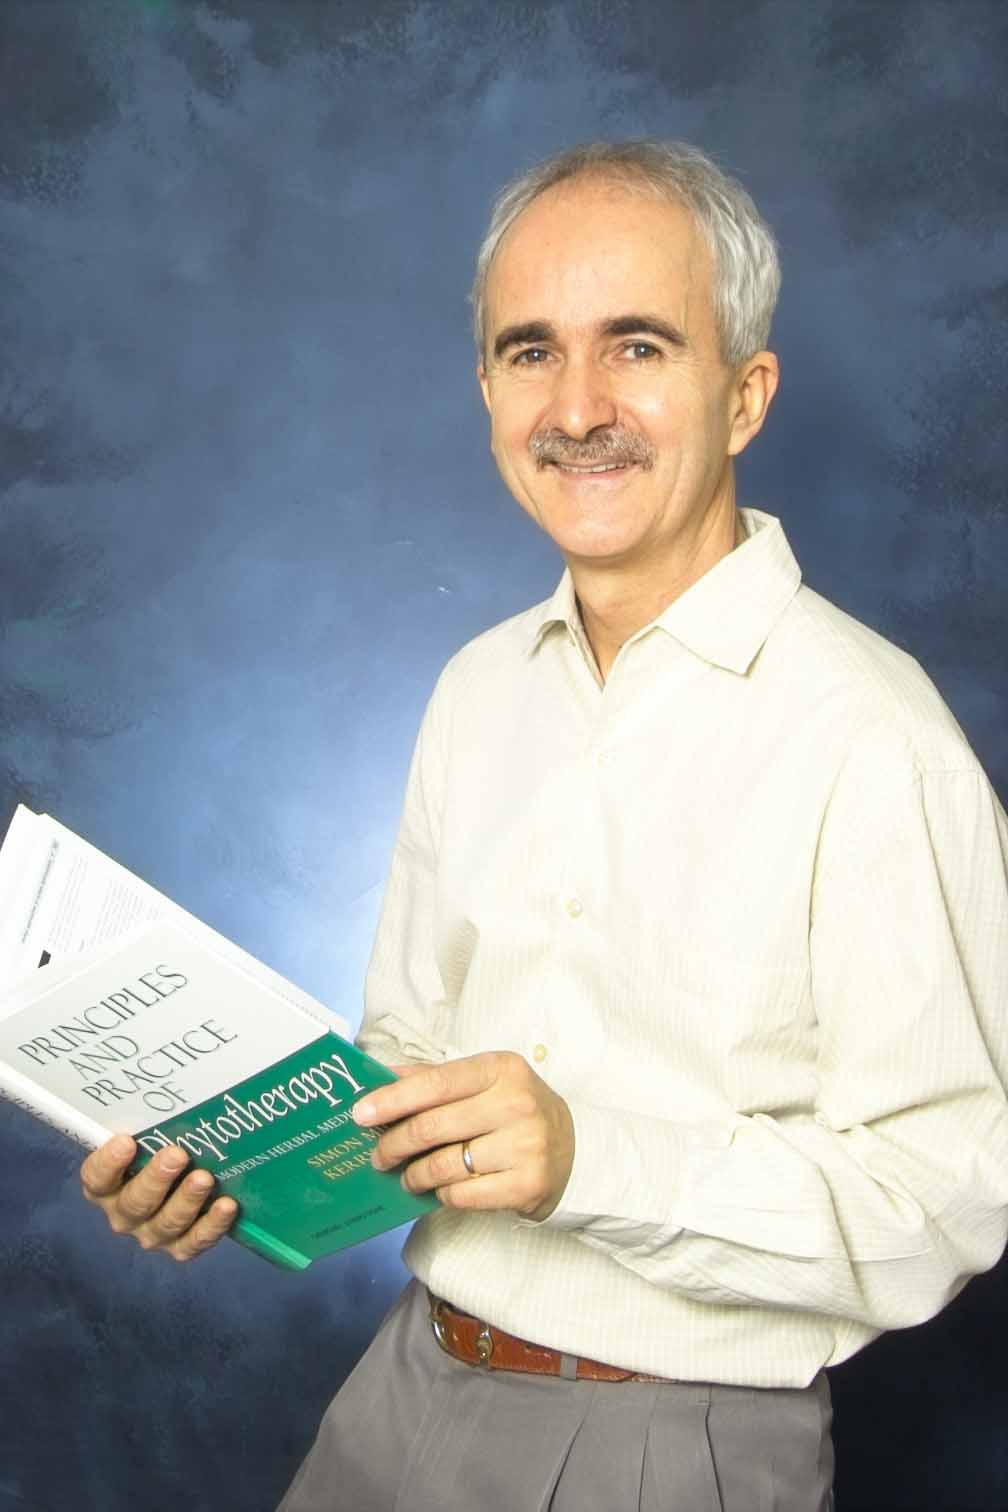 Dr. Kerry Bone, PhD, Founder of MediHerb of Australia and the most recognized published author and researcher on the use of herbs in clinical medicine.